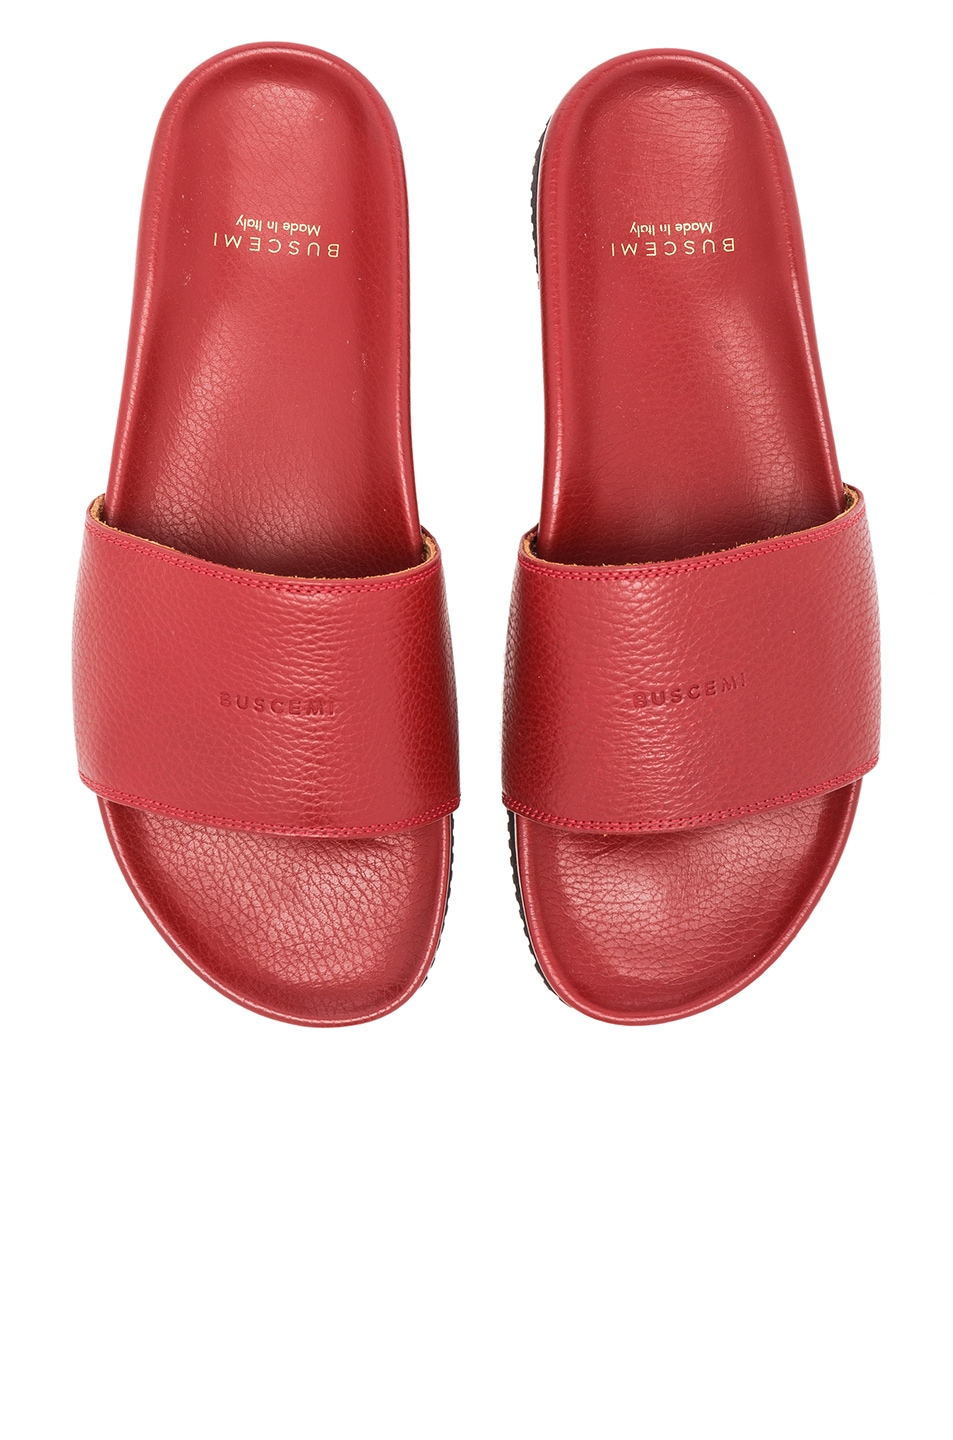 Image 5 of Buscemi Classic Leather Slide Sandals in Red